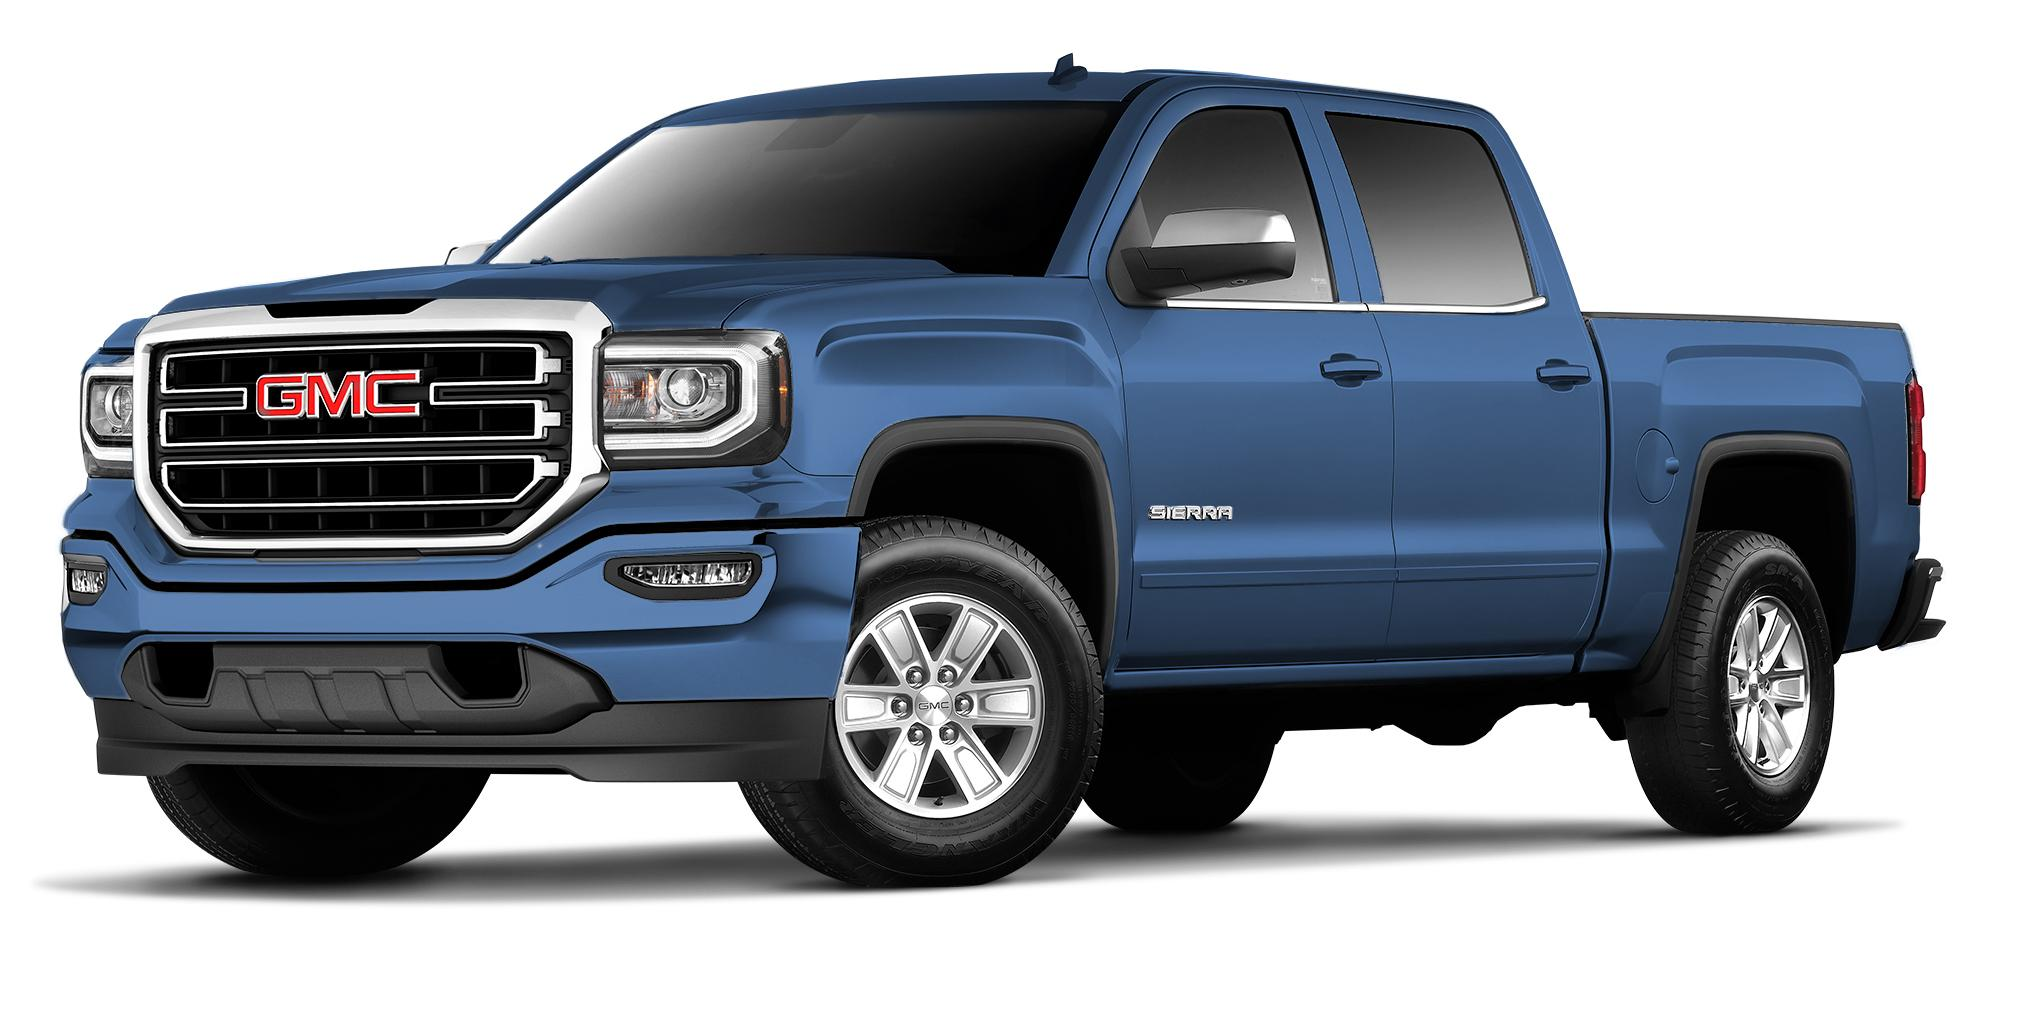 2017 GMC Sierra 1500 Blue Winnipeg